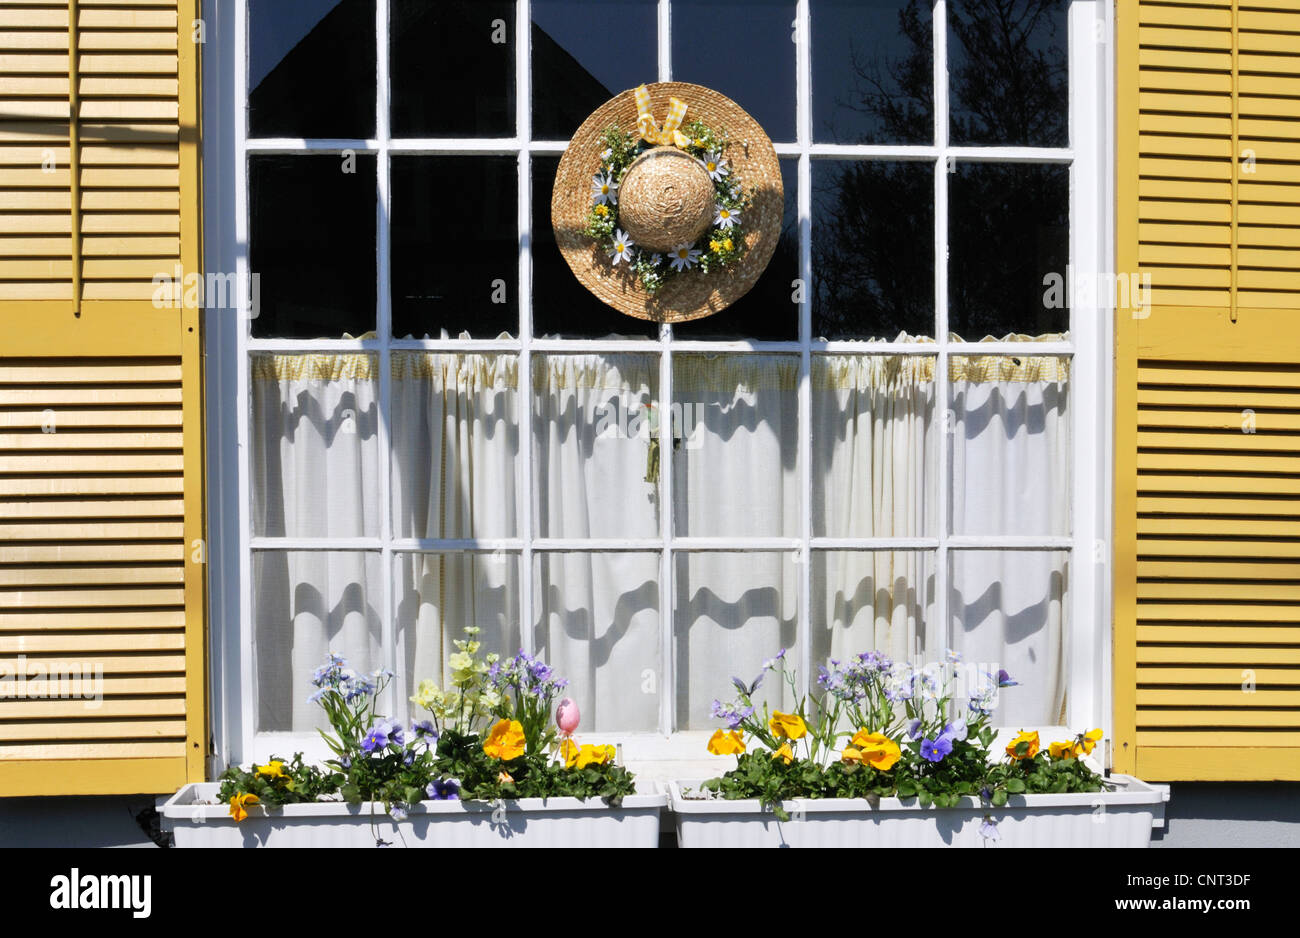 Seasonal spring window in West Falmouth, Cape Cod with window box flowers and straw hat with flowers - Stock Image